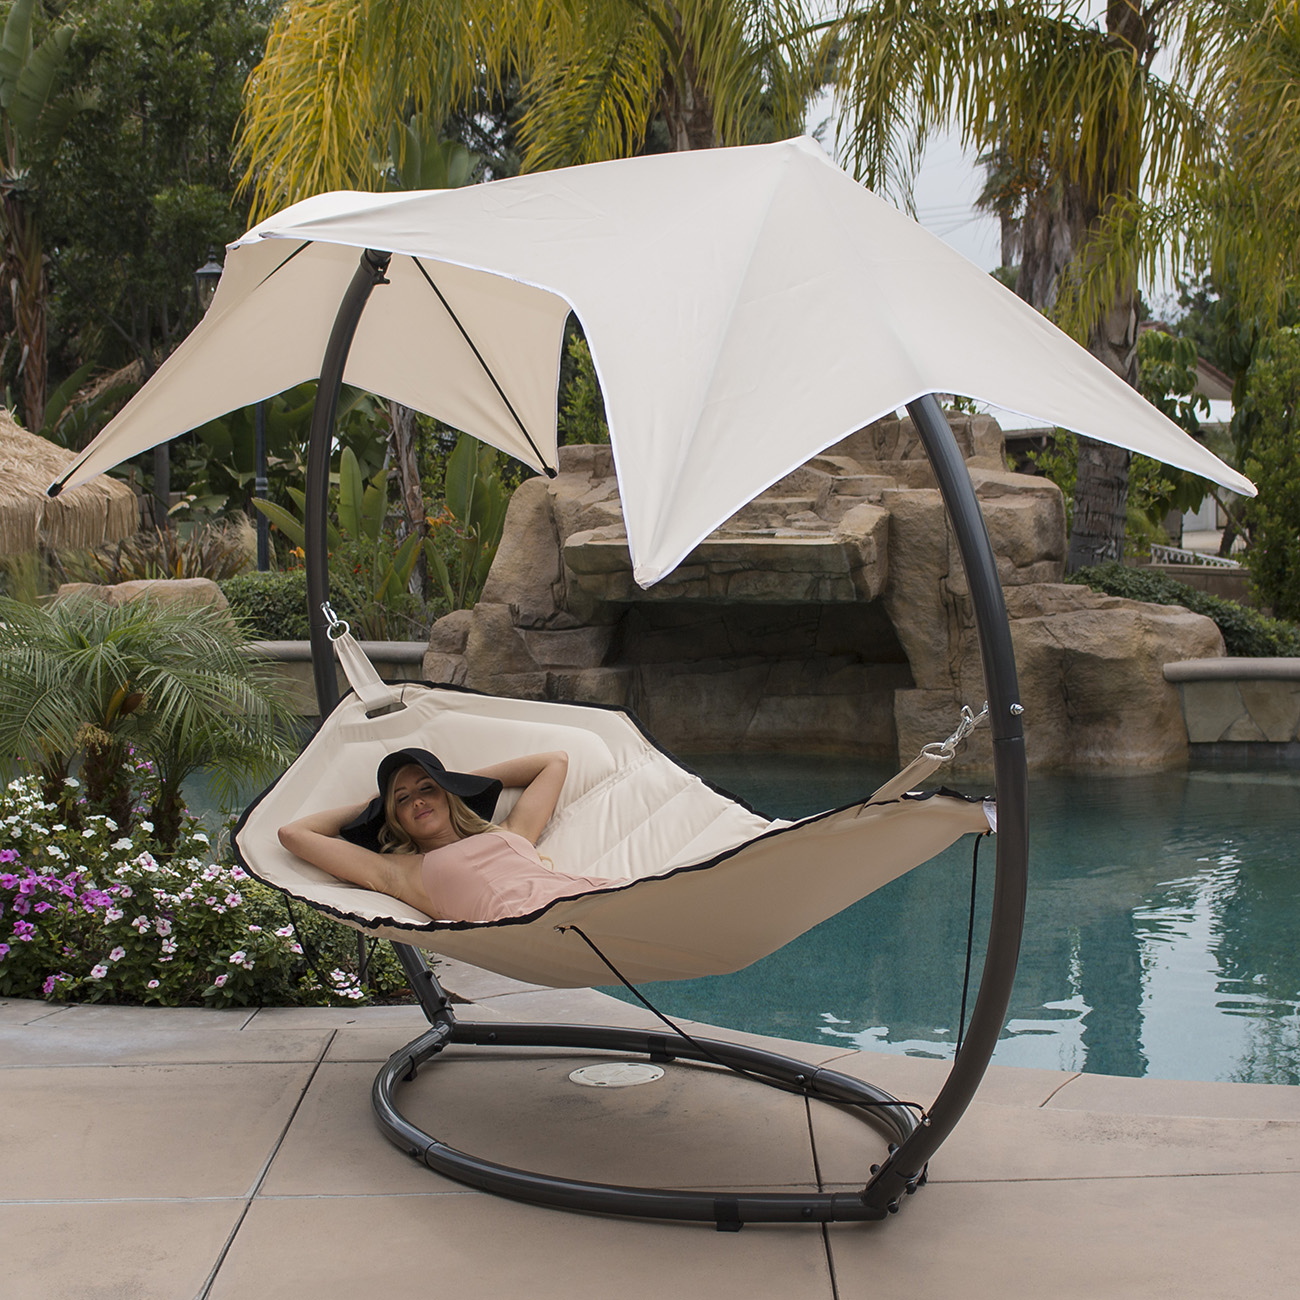 Patio Hammock W Sunroof Canopy Outdoor Swing Backyard